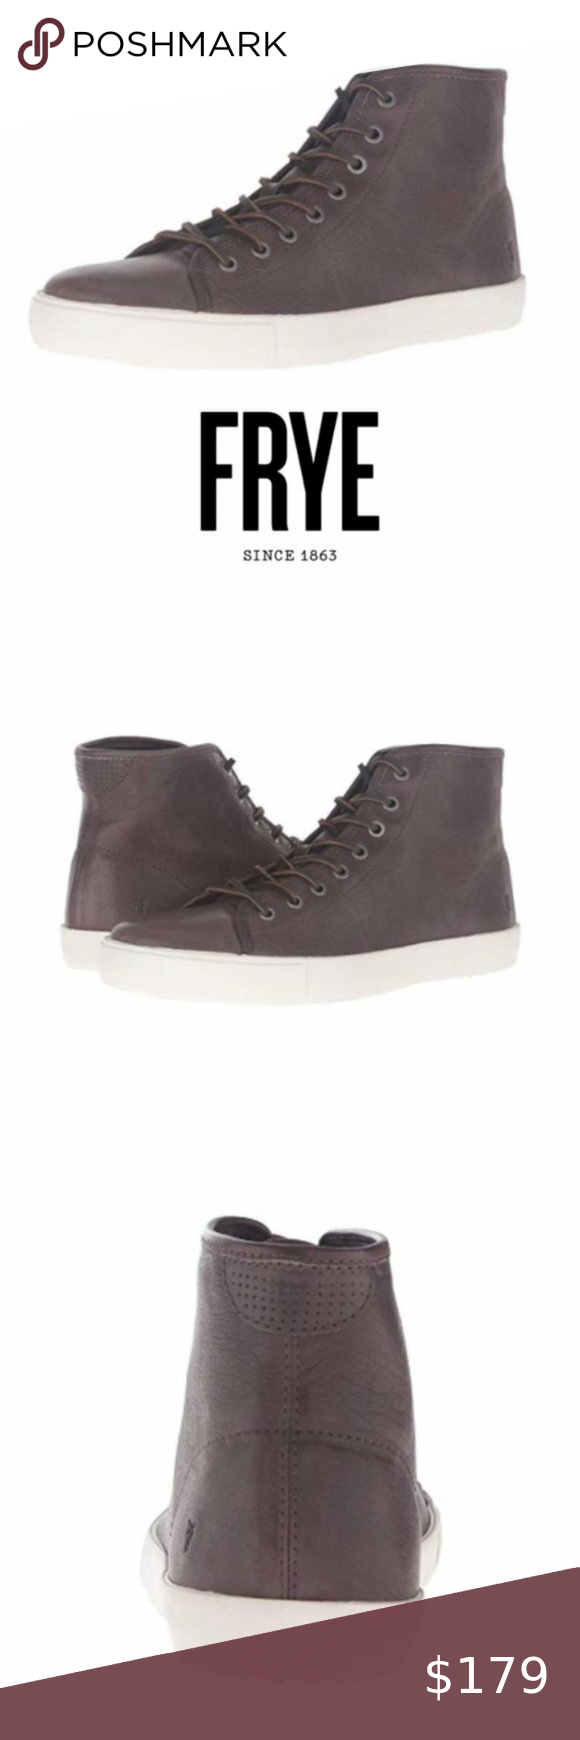 Frye Mens High Top Gray Leather Sneakers Sz 8 NIB